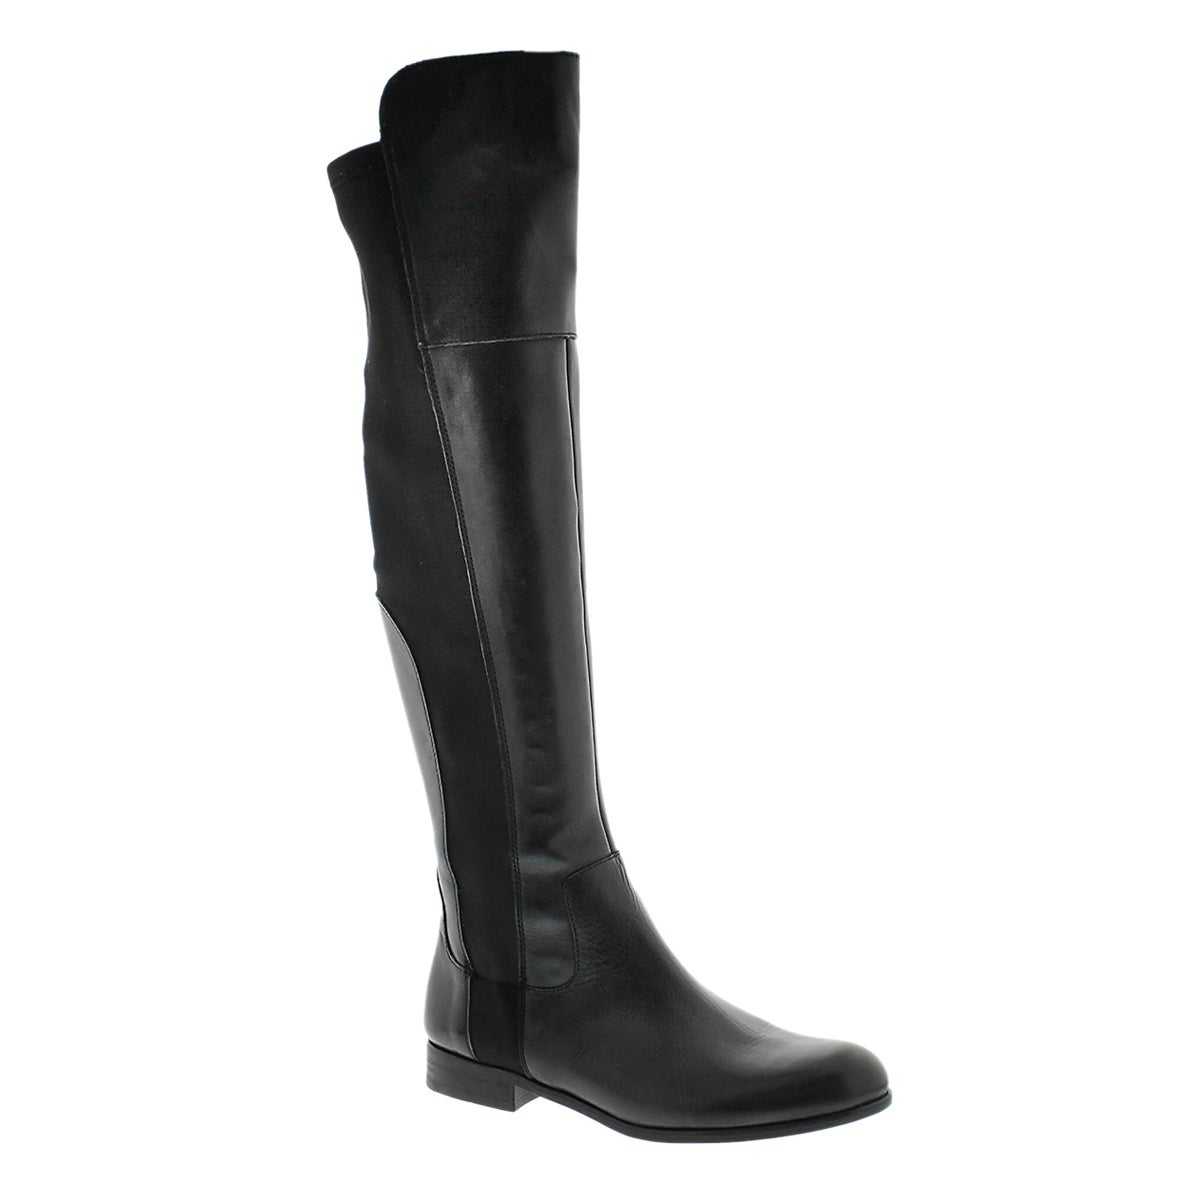 Lds Motor black over the knee boot